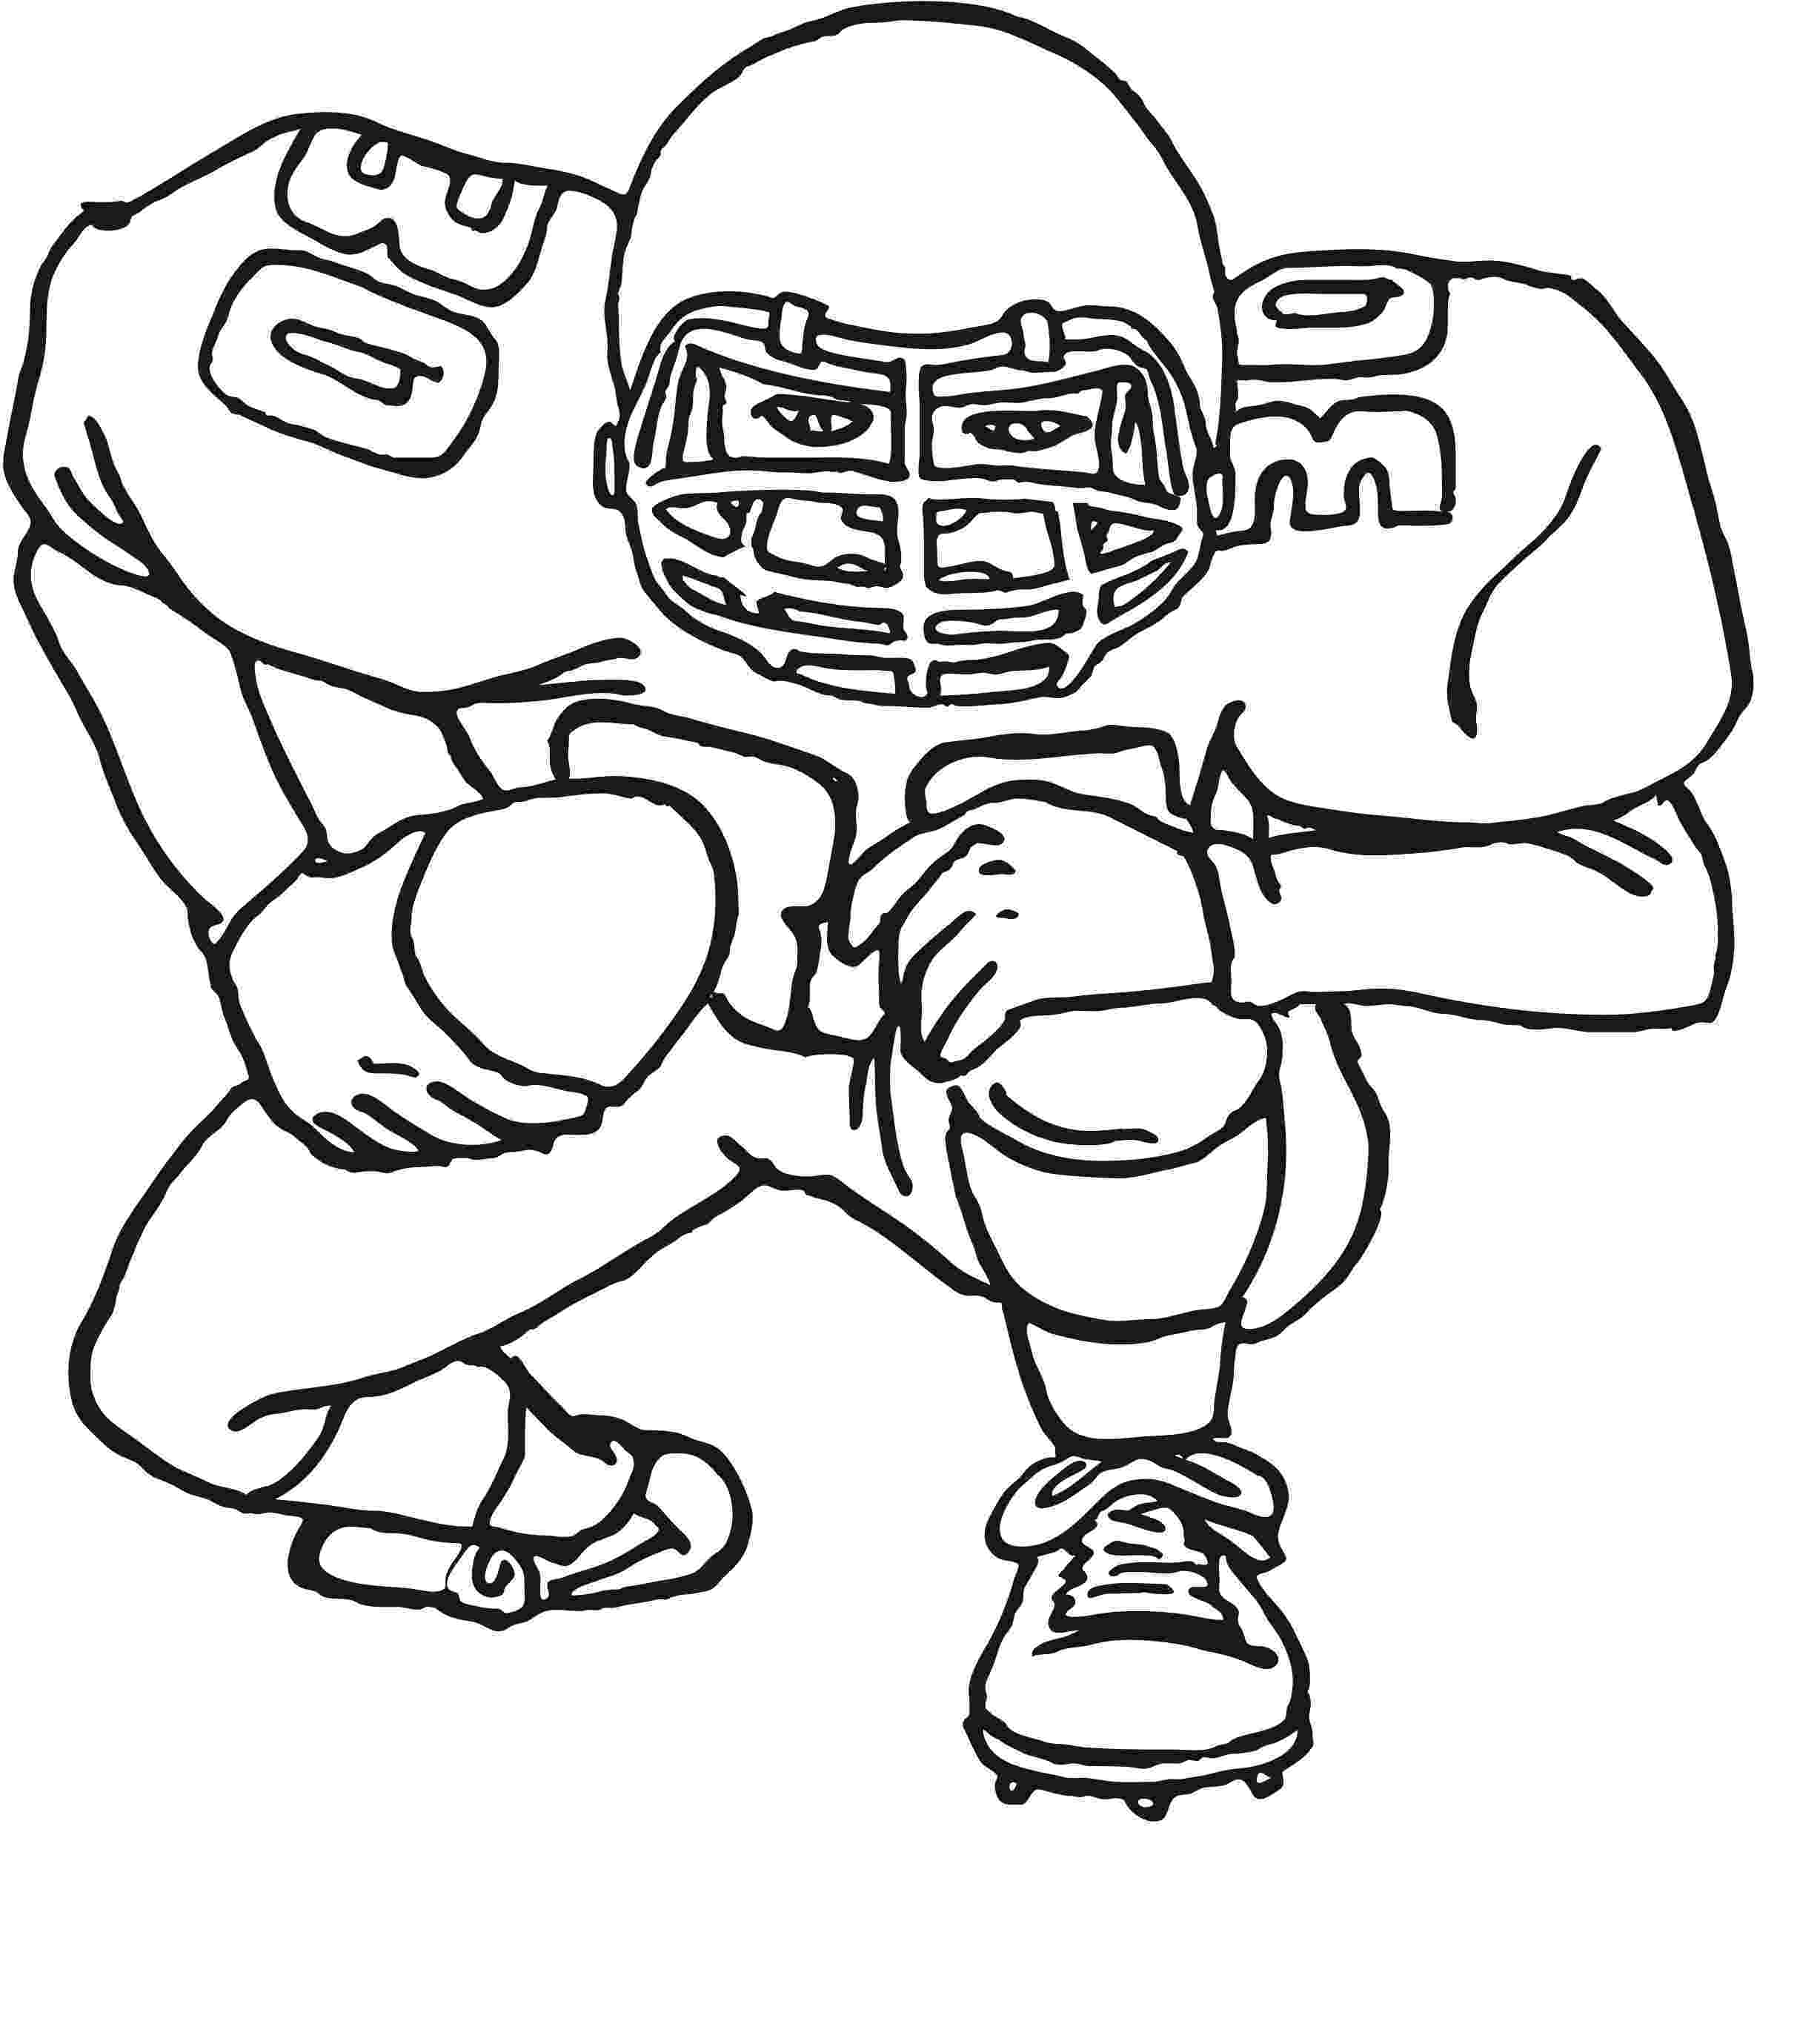 soccer player colouring pages free printable football coloring pages for kids best colouring player soccer pages